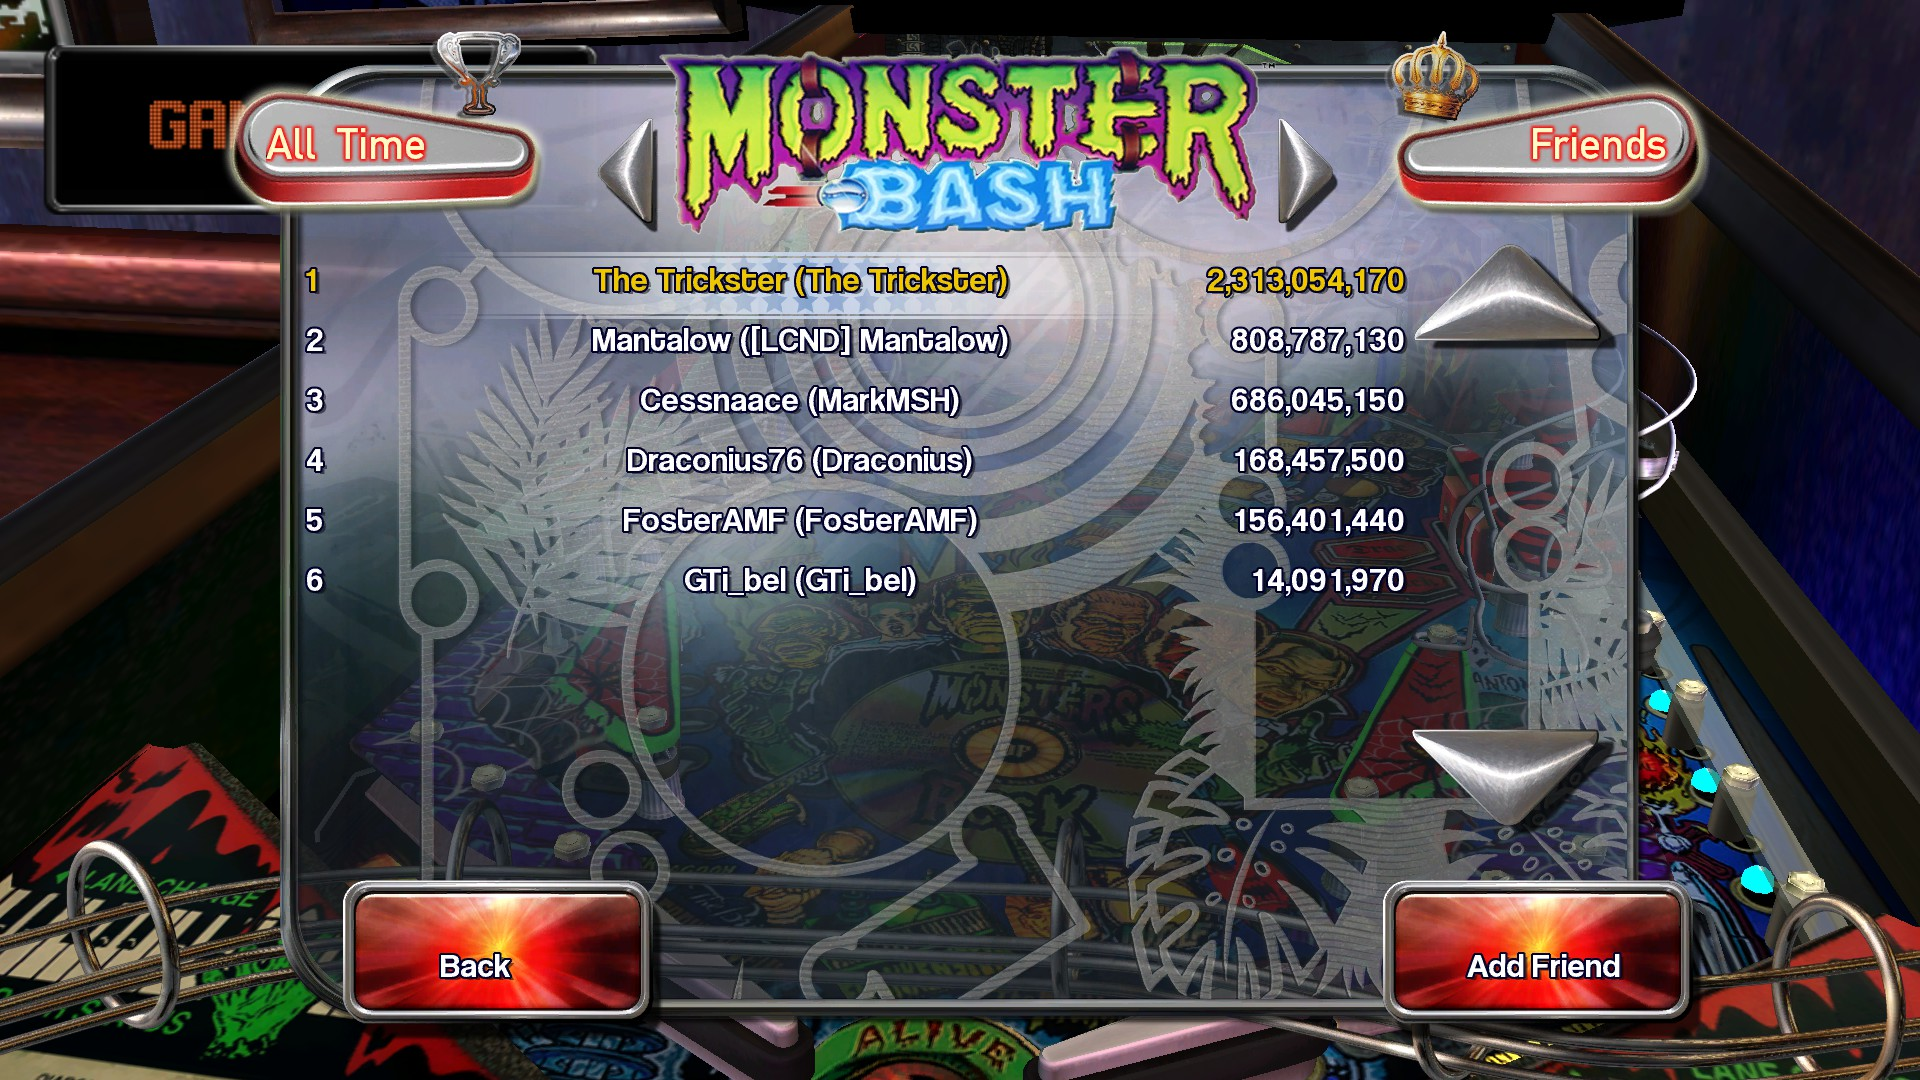 Pinball Arcade: Monster Bash 2,313,054,170 points